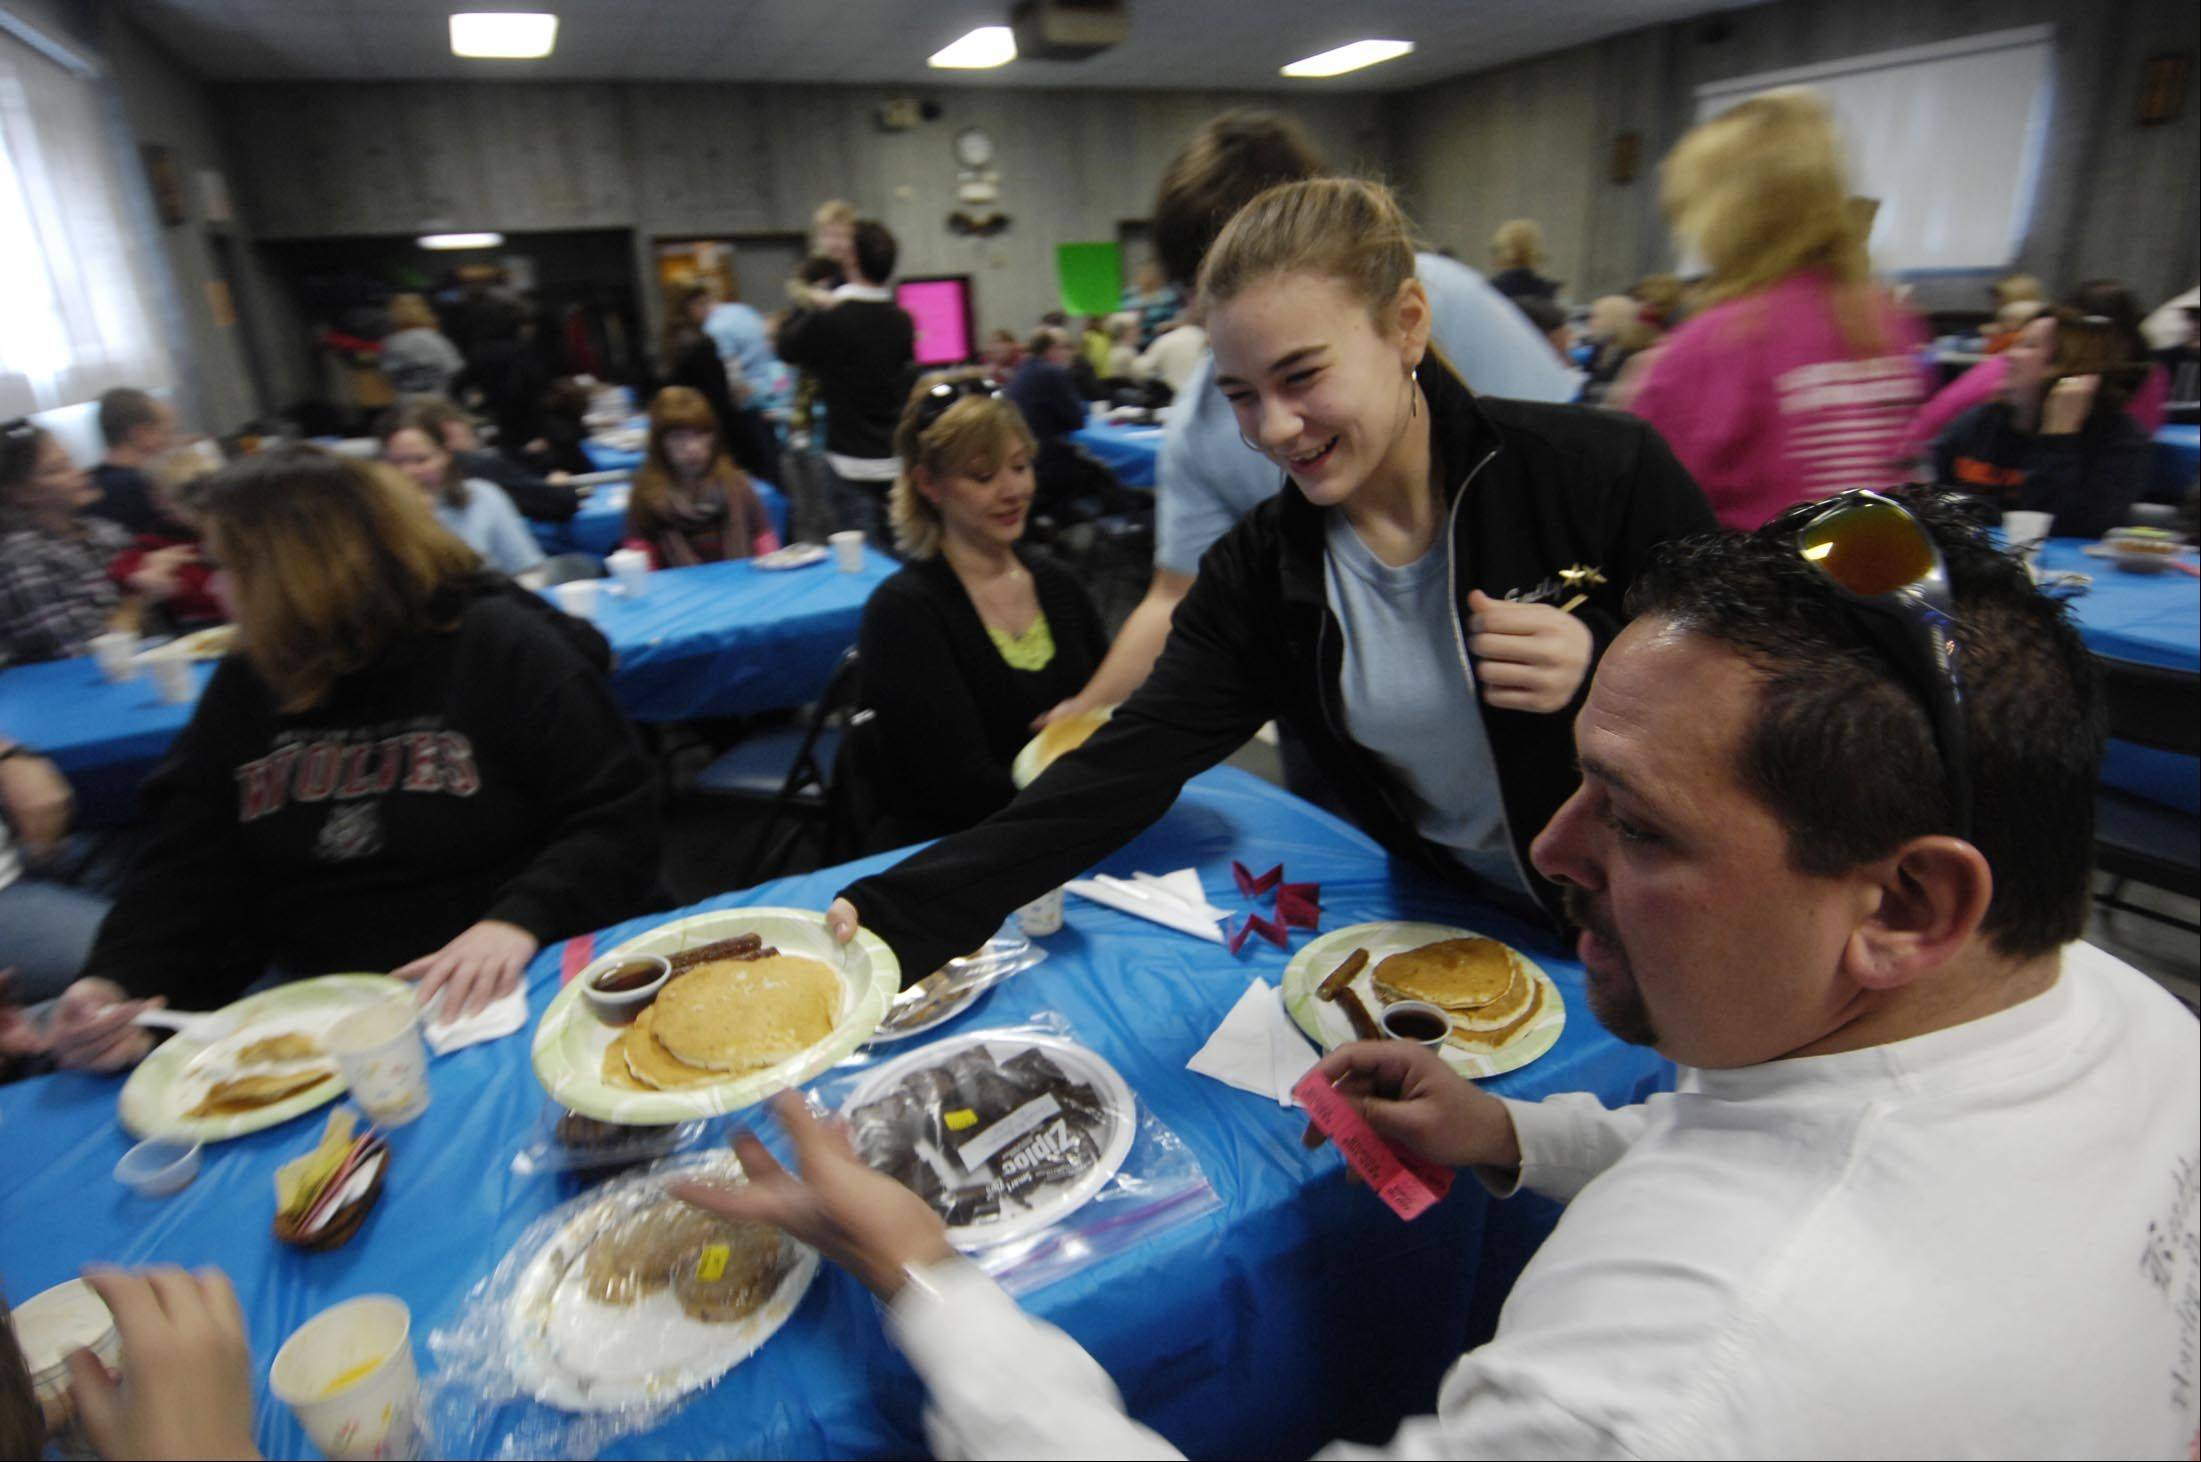 Emily Weyers and Nick Blaise, obscured, both 18, served plates of warm food last year at a pancake breakfast to benefit the Allegiance Youth Color Guard of Dundee. Weyers was struck and killed by a car as she walked along Algonquin Road.